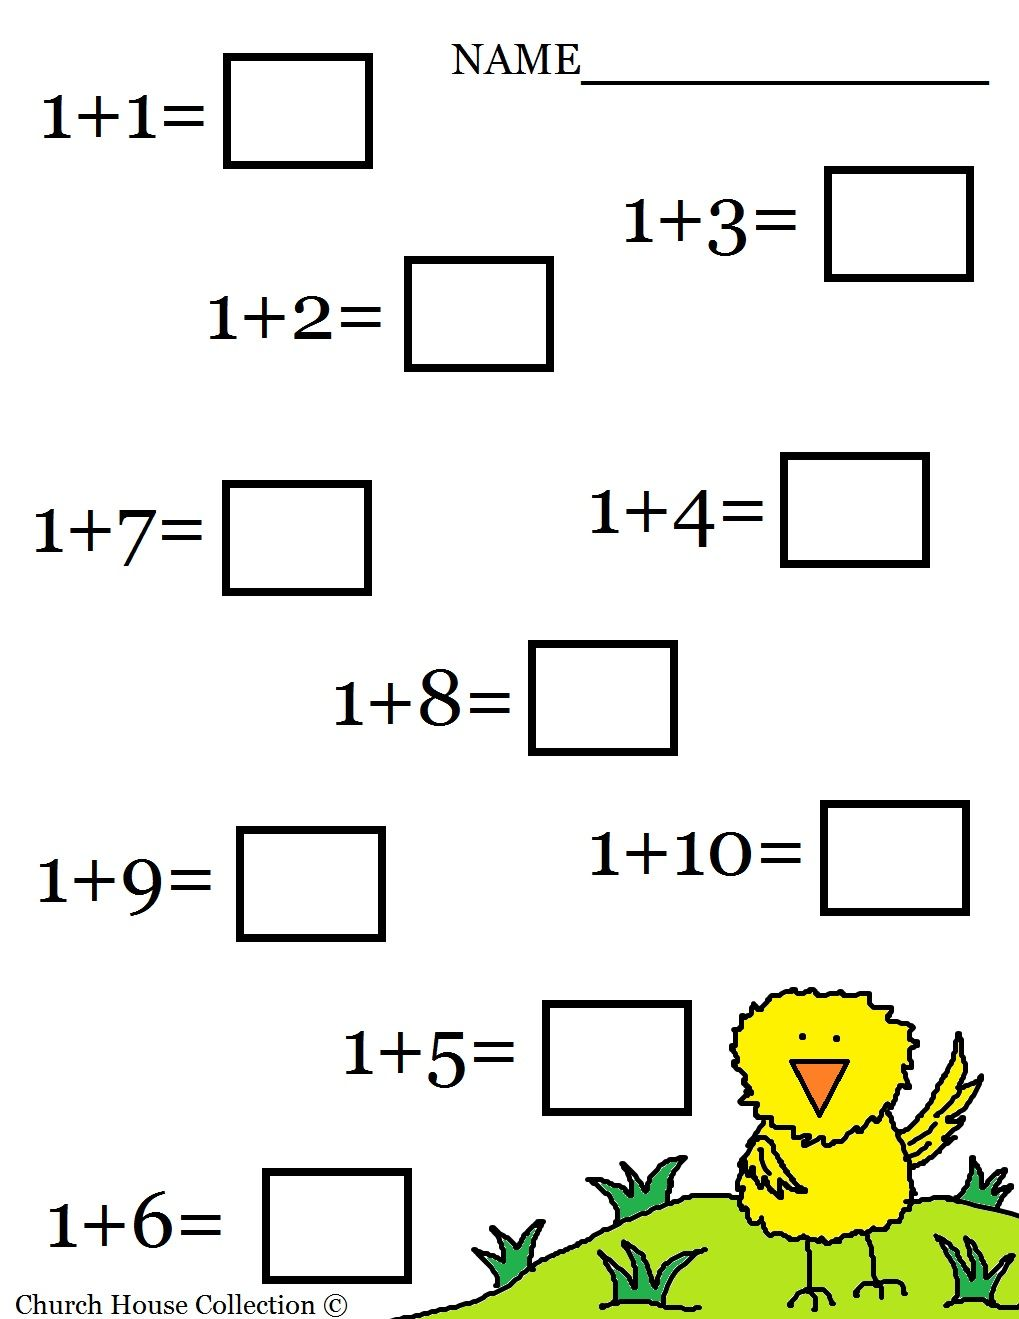 Aldiablosus  Sweet  Images About Worksheets  Math On Pinterest  Math Sheets  With Inspiring  Images About Worksheets  Math On Pinterest  Math Sheets Math Worksheets For Kindergarten And Simple Addition With Awesome Year  Maths Worksheets Also D Shapes Properties Worksheet In Addition Adverbs Worksheets For Grade  And Maths Activity Worksheets As Well As Clock Worksheets Printable Additionally Finding Area By Counting Squares Worksheet From Pinterestcom With Aldiablosus  Inspiring  Images About Worksheets  Math On Pinterest  Math Sheets  With Awesome  Images About Worksheets  Math On Pinterest  Math Sheets Math Worksheets For Kindergarten And Simple Addition And Sweet Year  Maths Worksheets Also D Shapes Properties Worksheet In Addition Adverbs Worksheets For Grade  From Pinterestcom